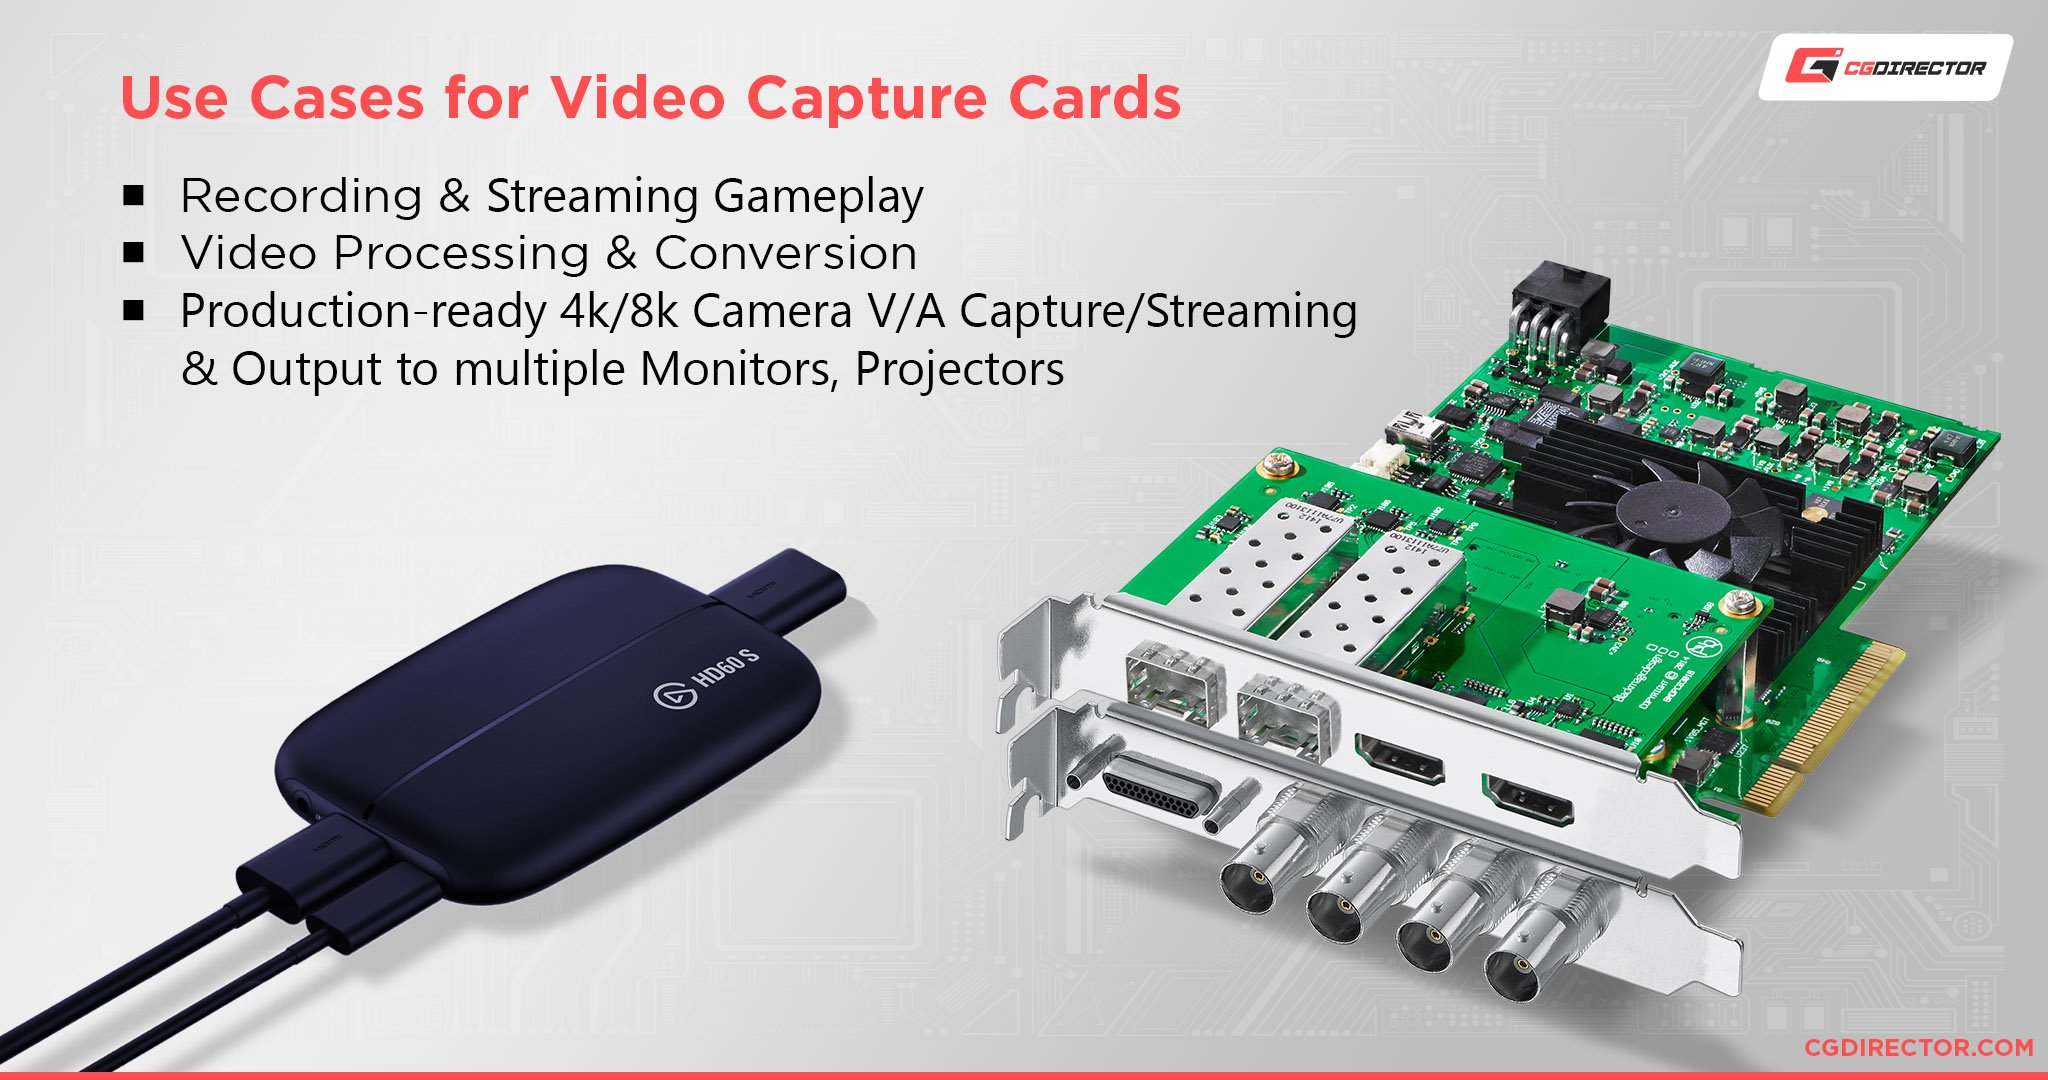 Use Cases for Video Capture Cards